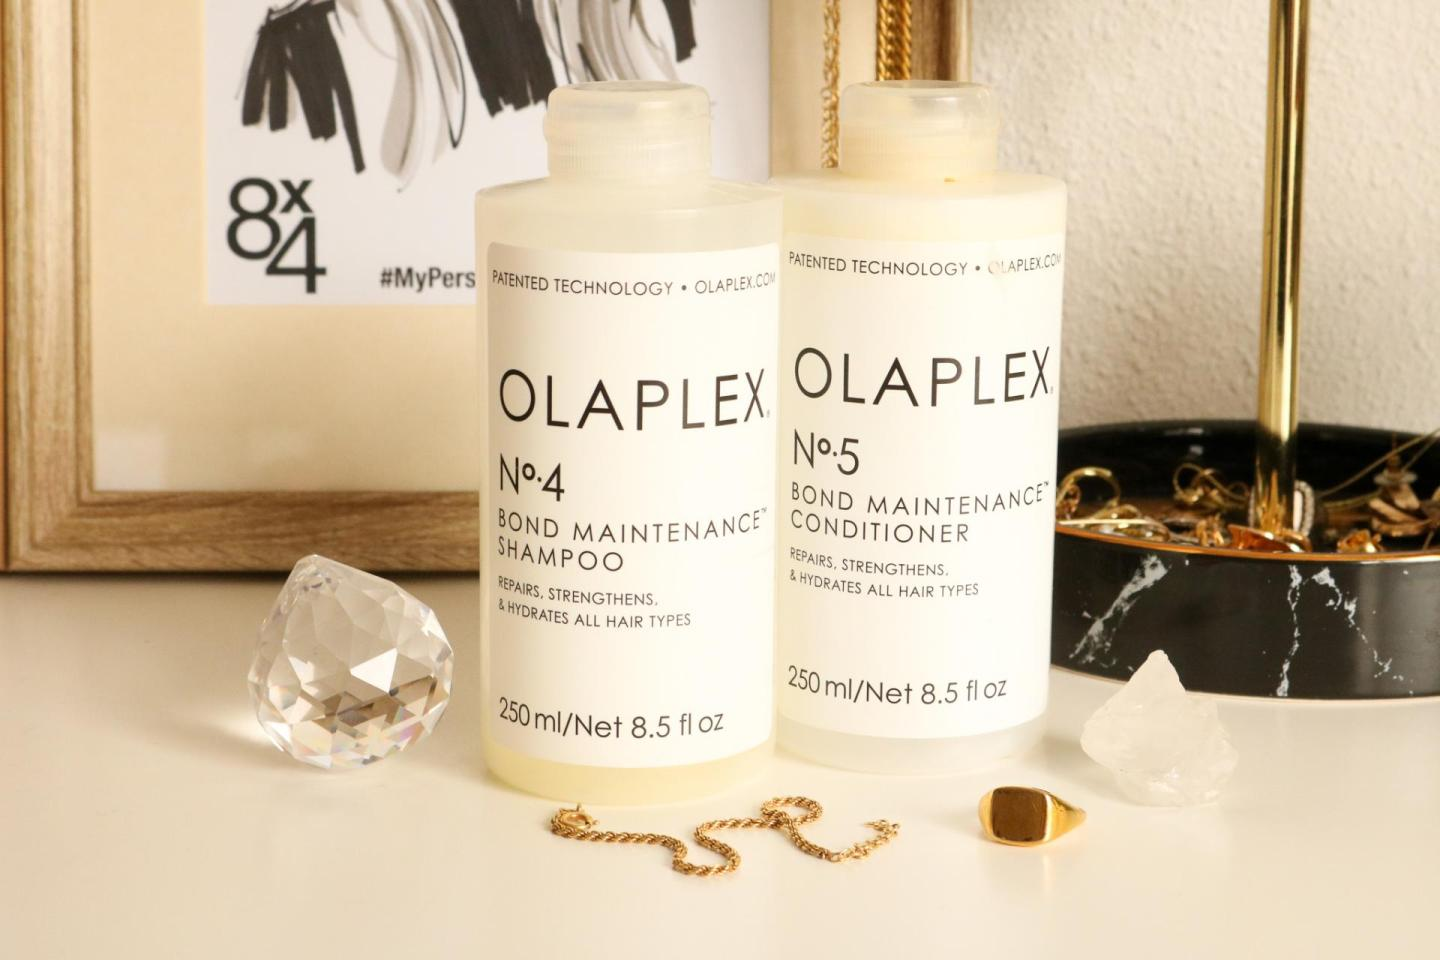 Olaplex 4 5 Bond Maintenance review